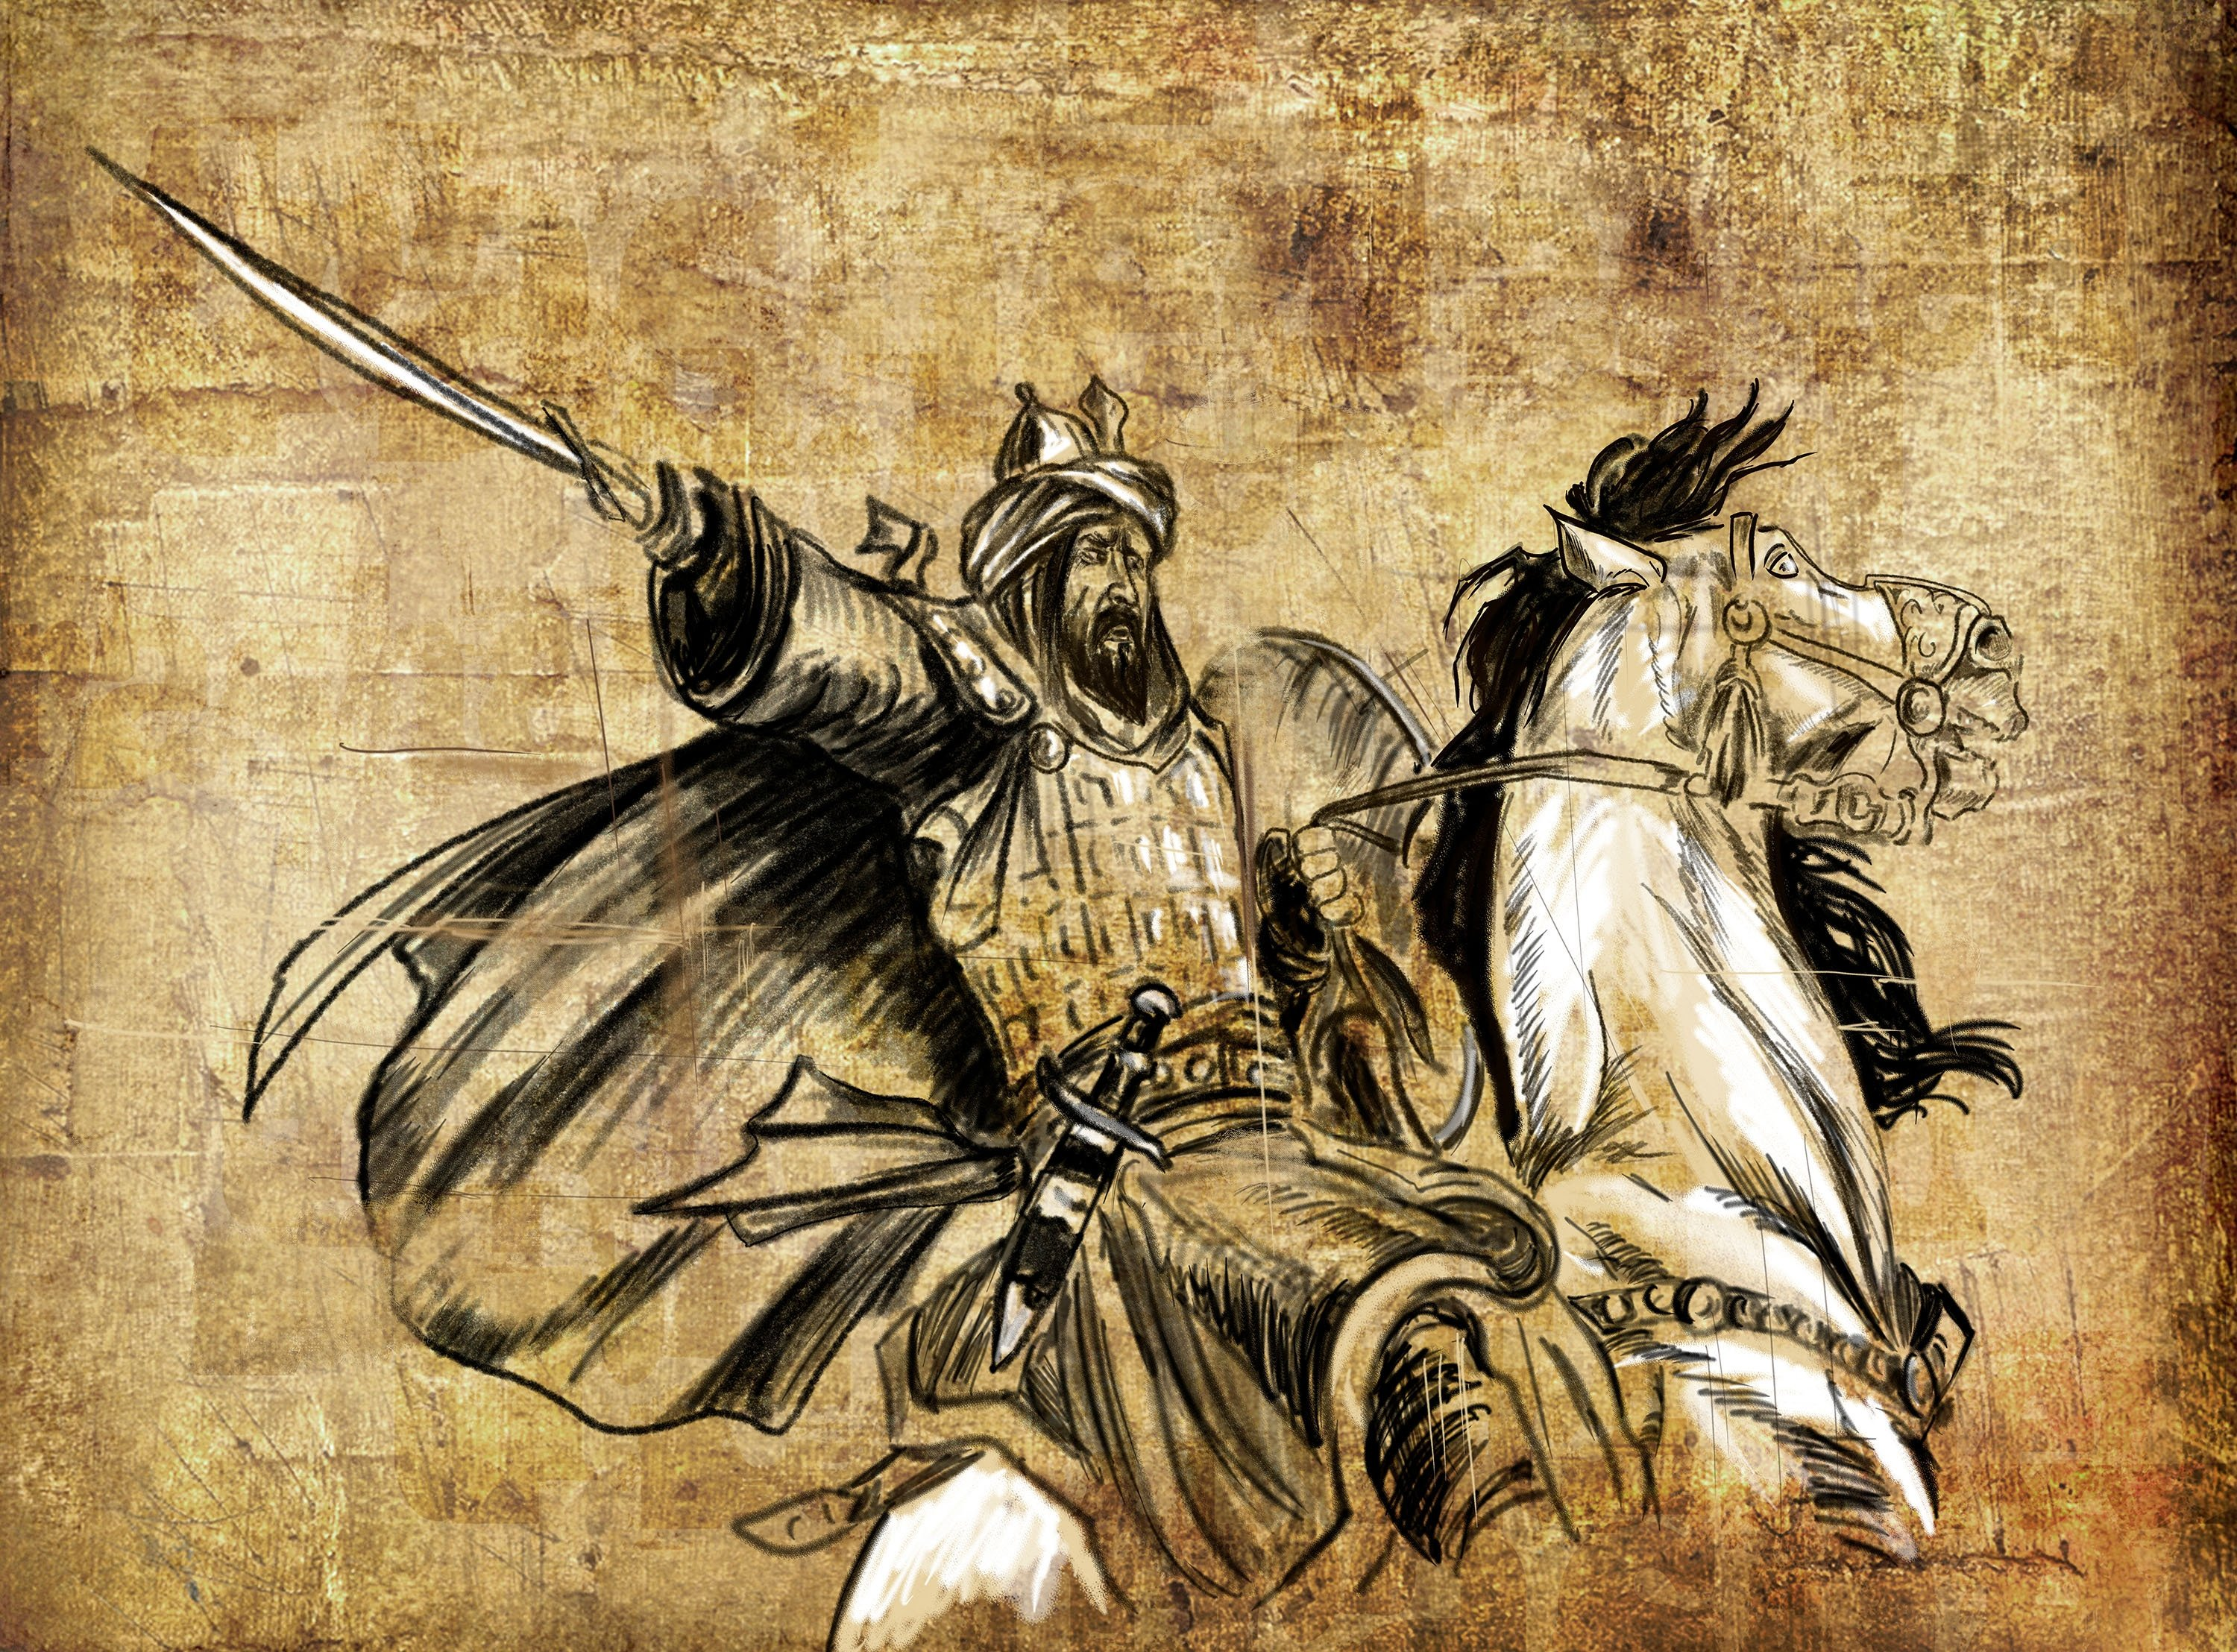 A painting depicts the likeness of Hasan-i Sabbah yielding a sword on horseback. (Shutterstock Photo)